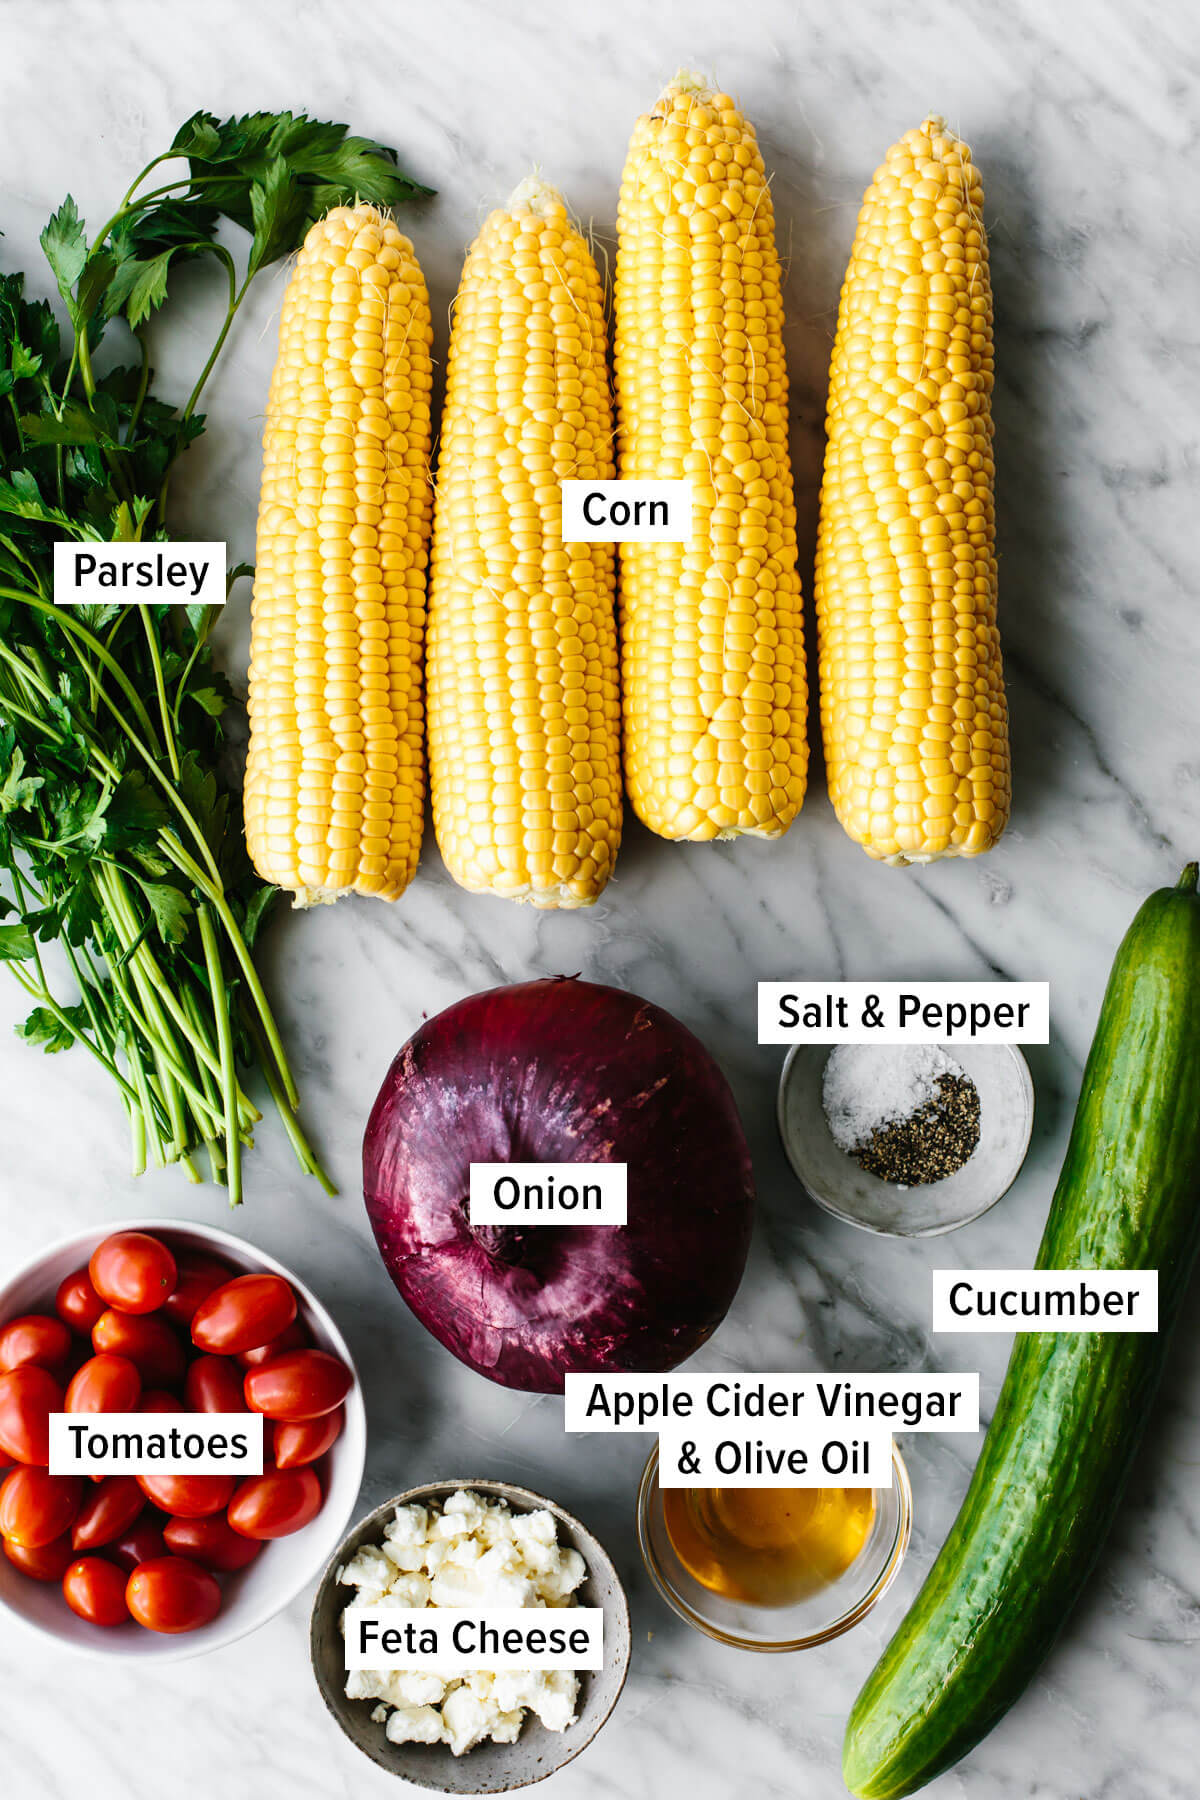 Ingredients for grilled corn salad on a table.